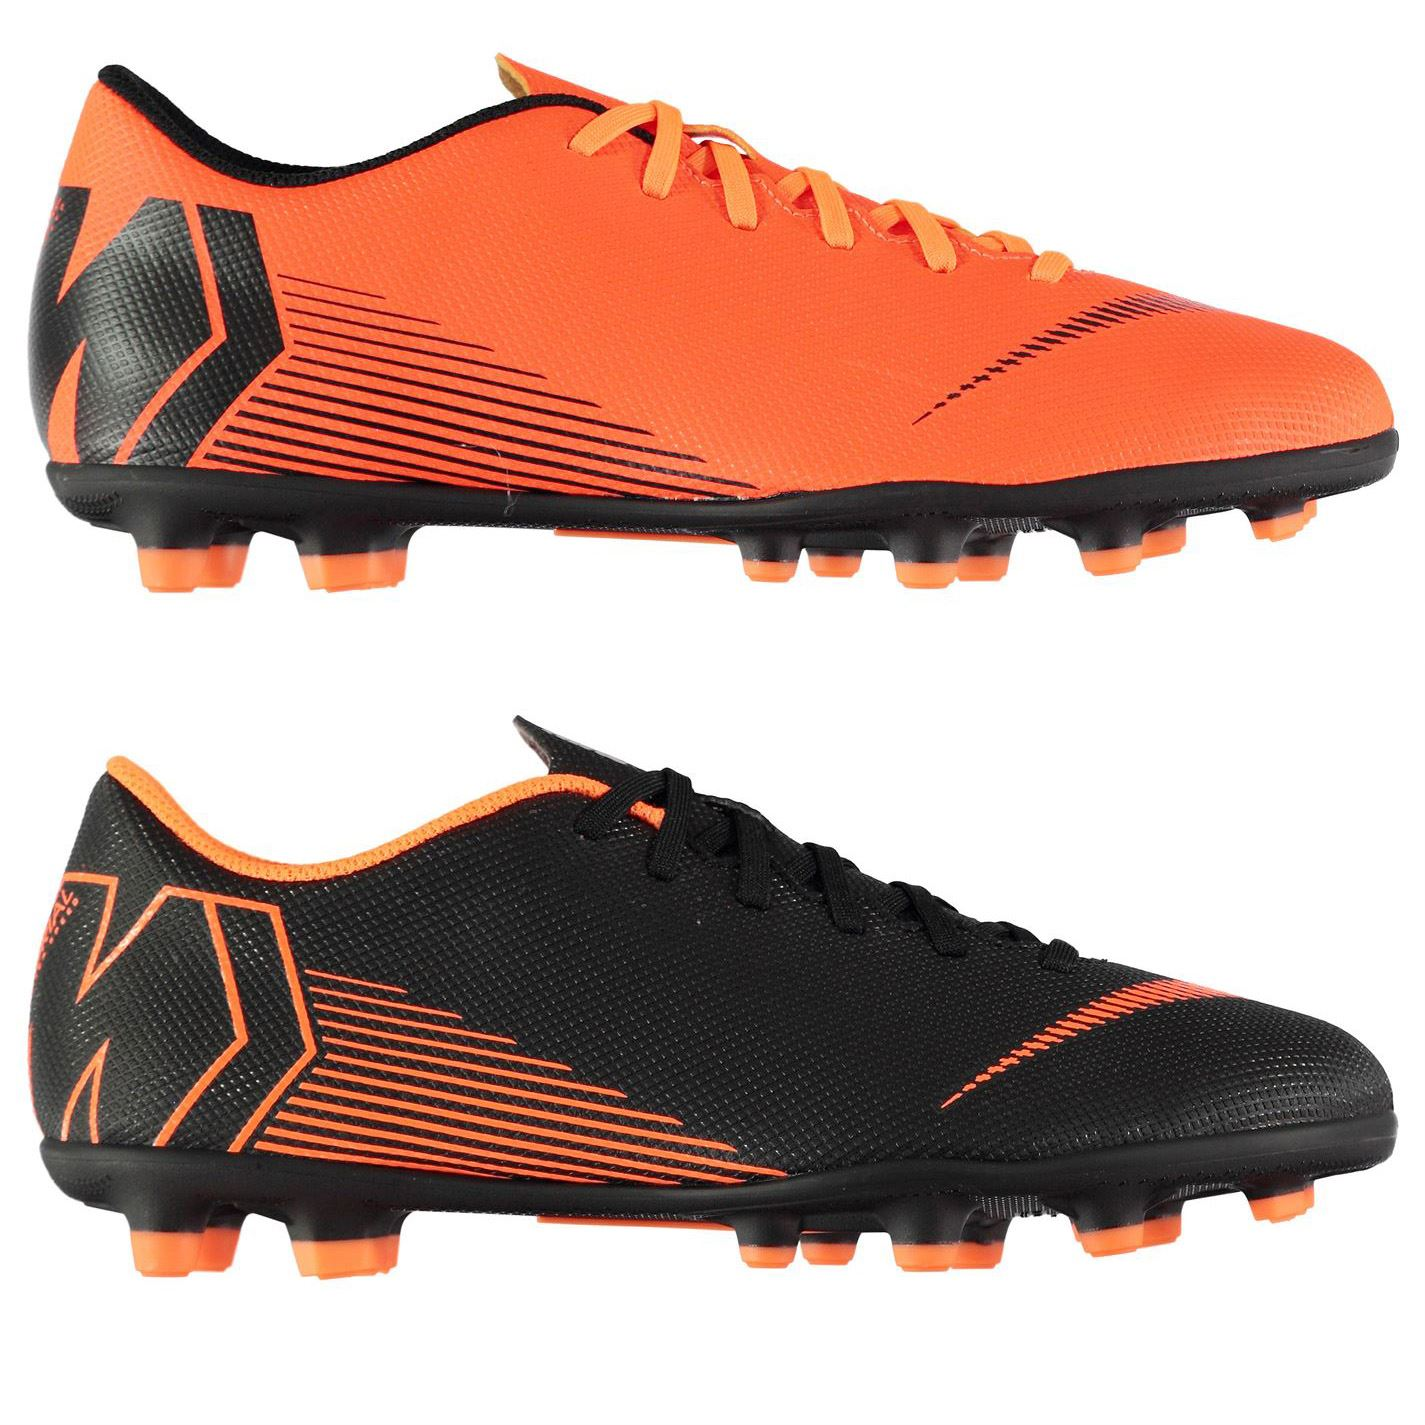 outlet store f9320 09db8 ... Nike Mercurial Vapor Club FG Firm Ground Football Boots Mens Soccer  Shoes Cleats ...